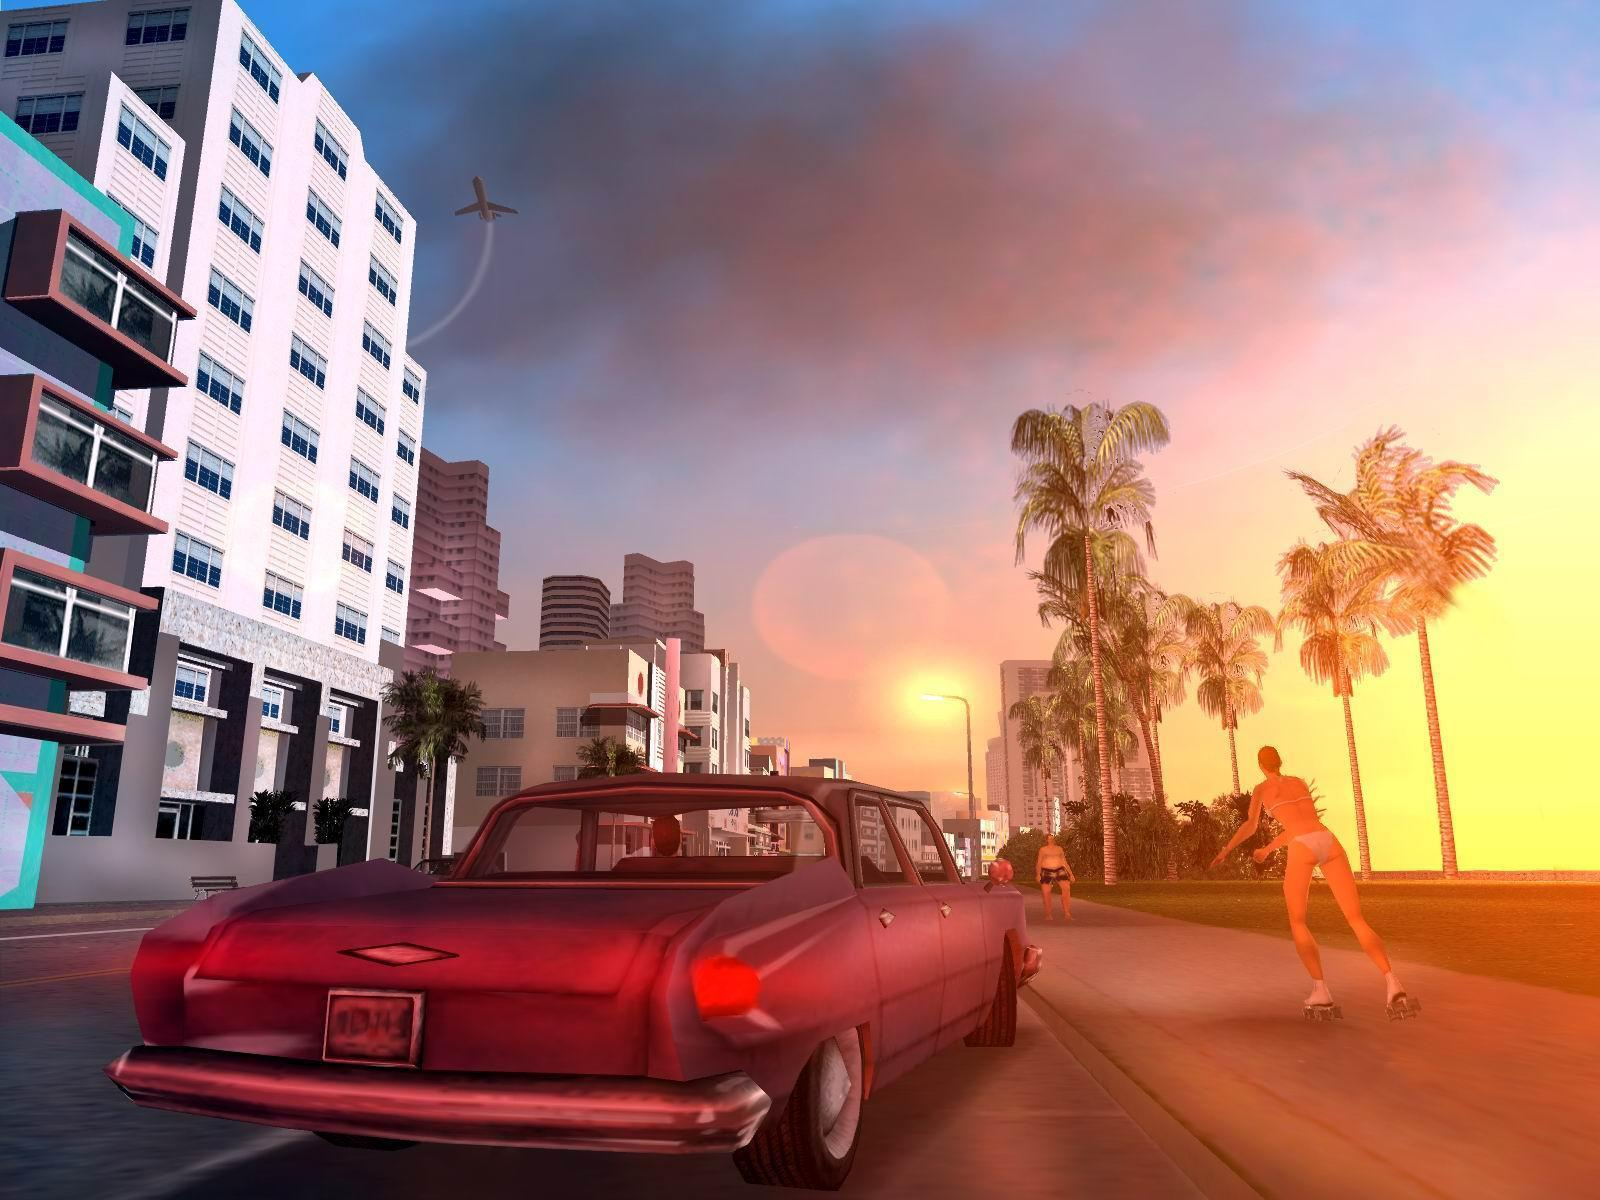 406250 Vice City Wallpapers